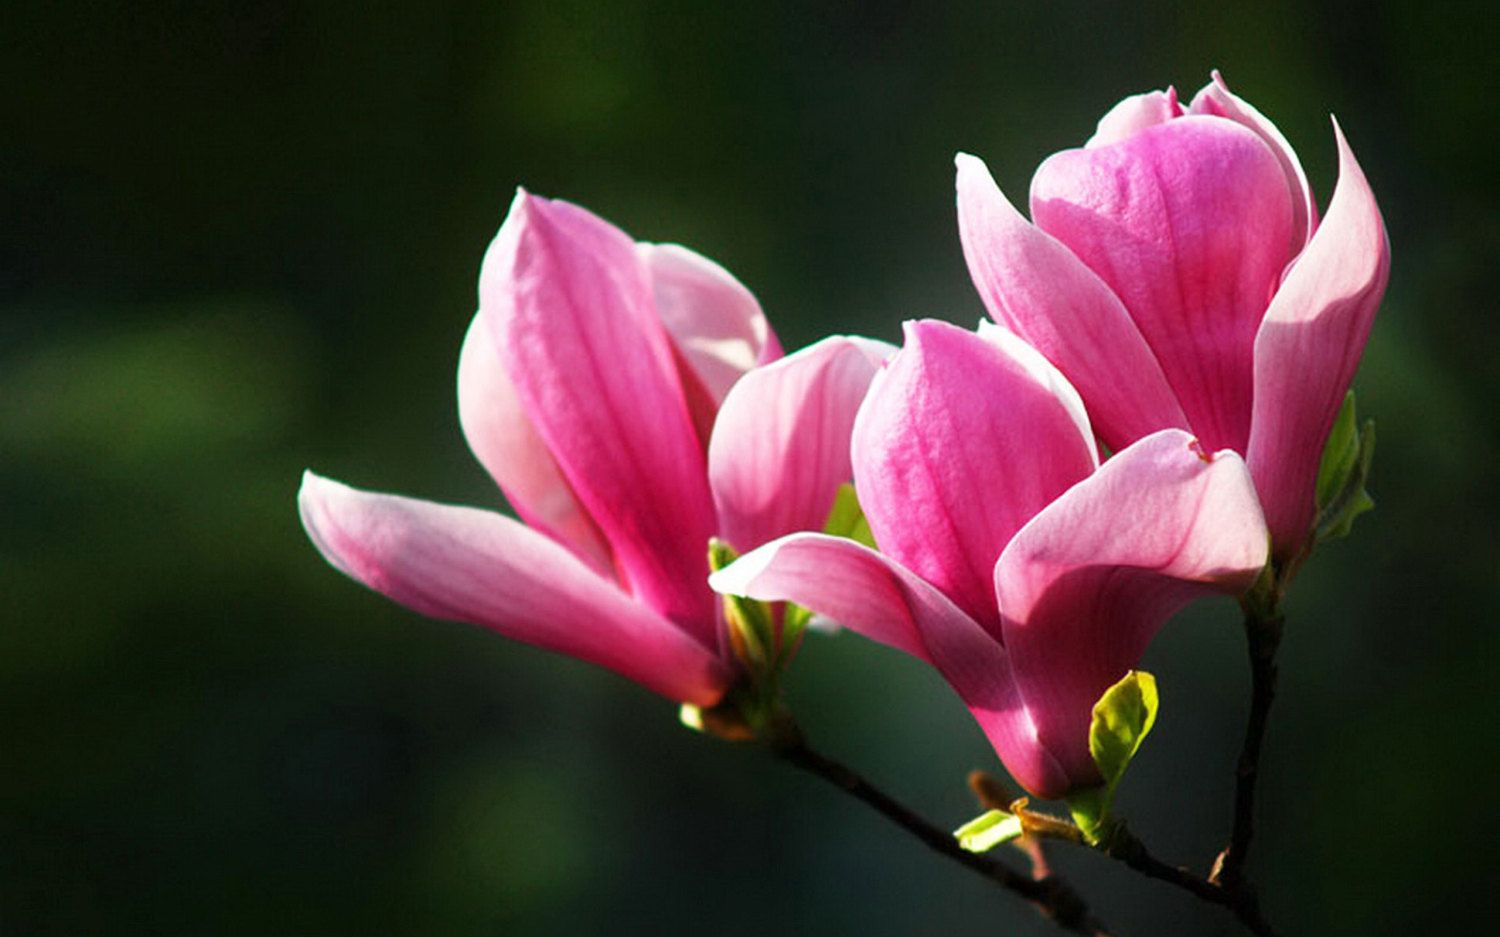 Pink Magnolia Bloom Flowers Flower Meanings Pictures And Photos Magnolia Flower Flower Meanings Amaryllis Flowers